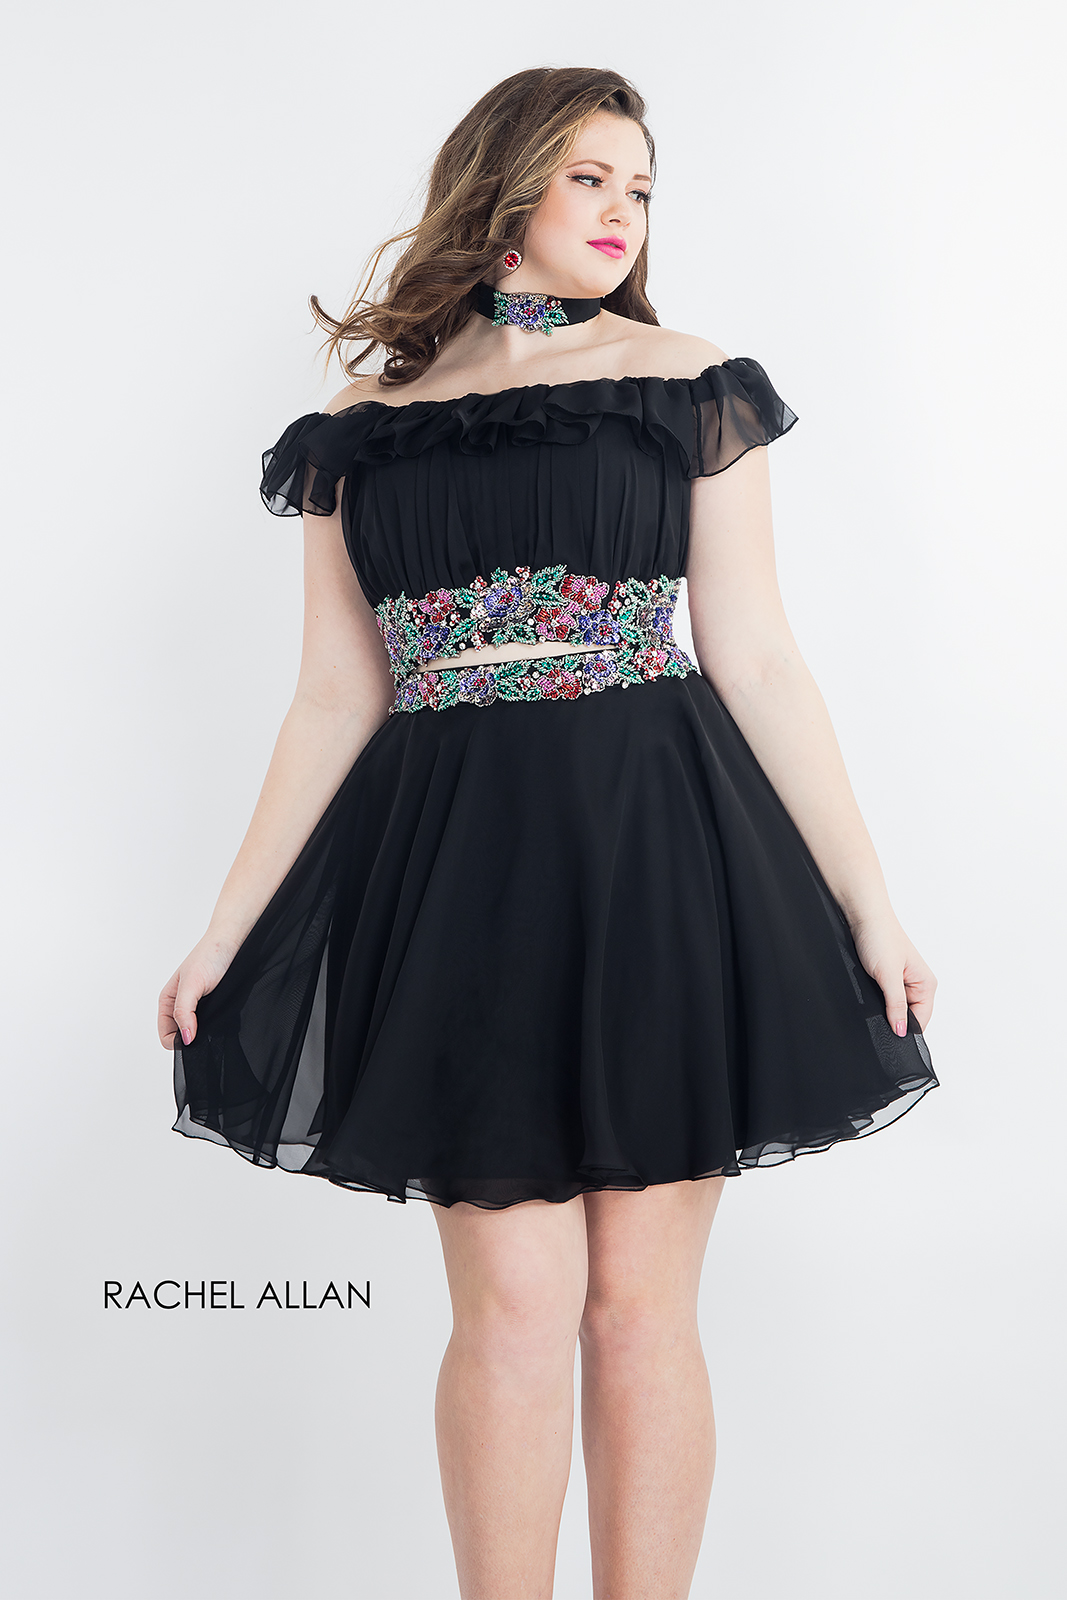 Choker Fit & Flare Homecoming Curves in Black Color